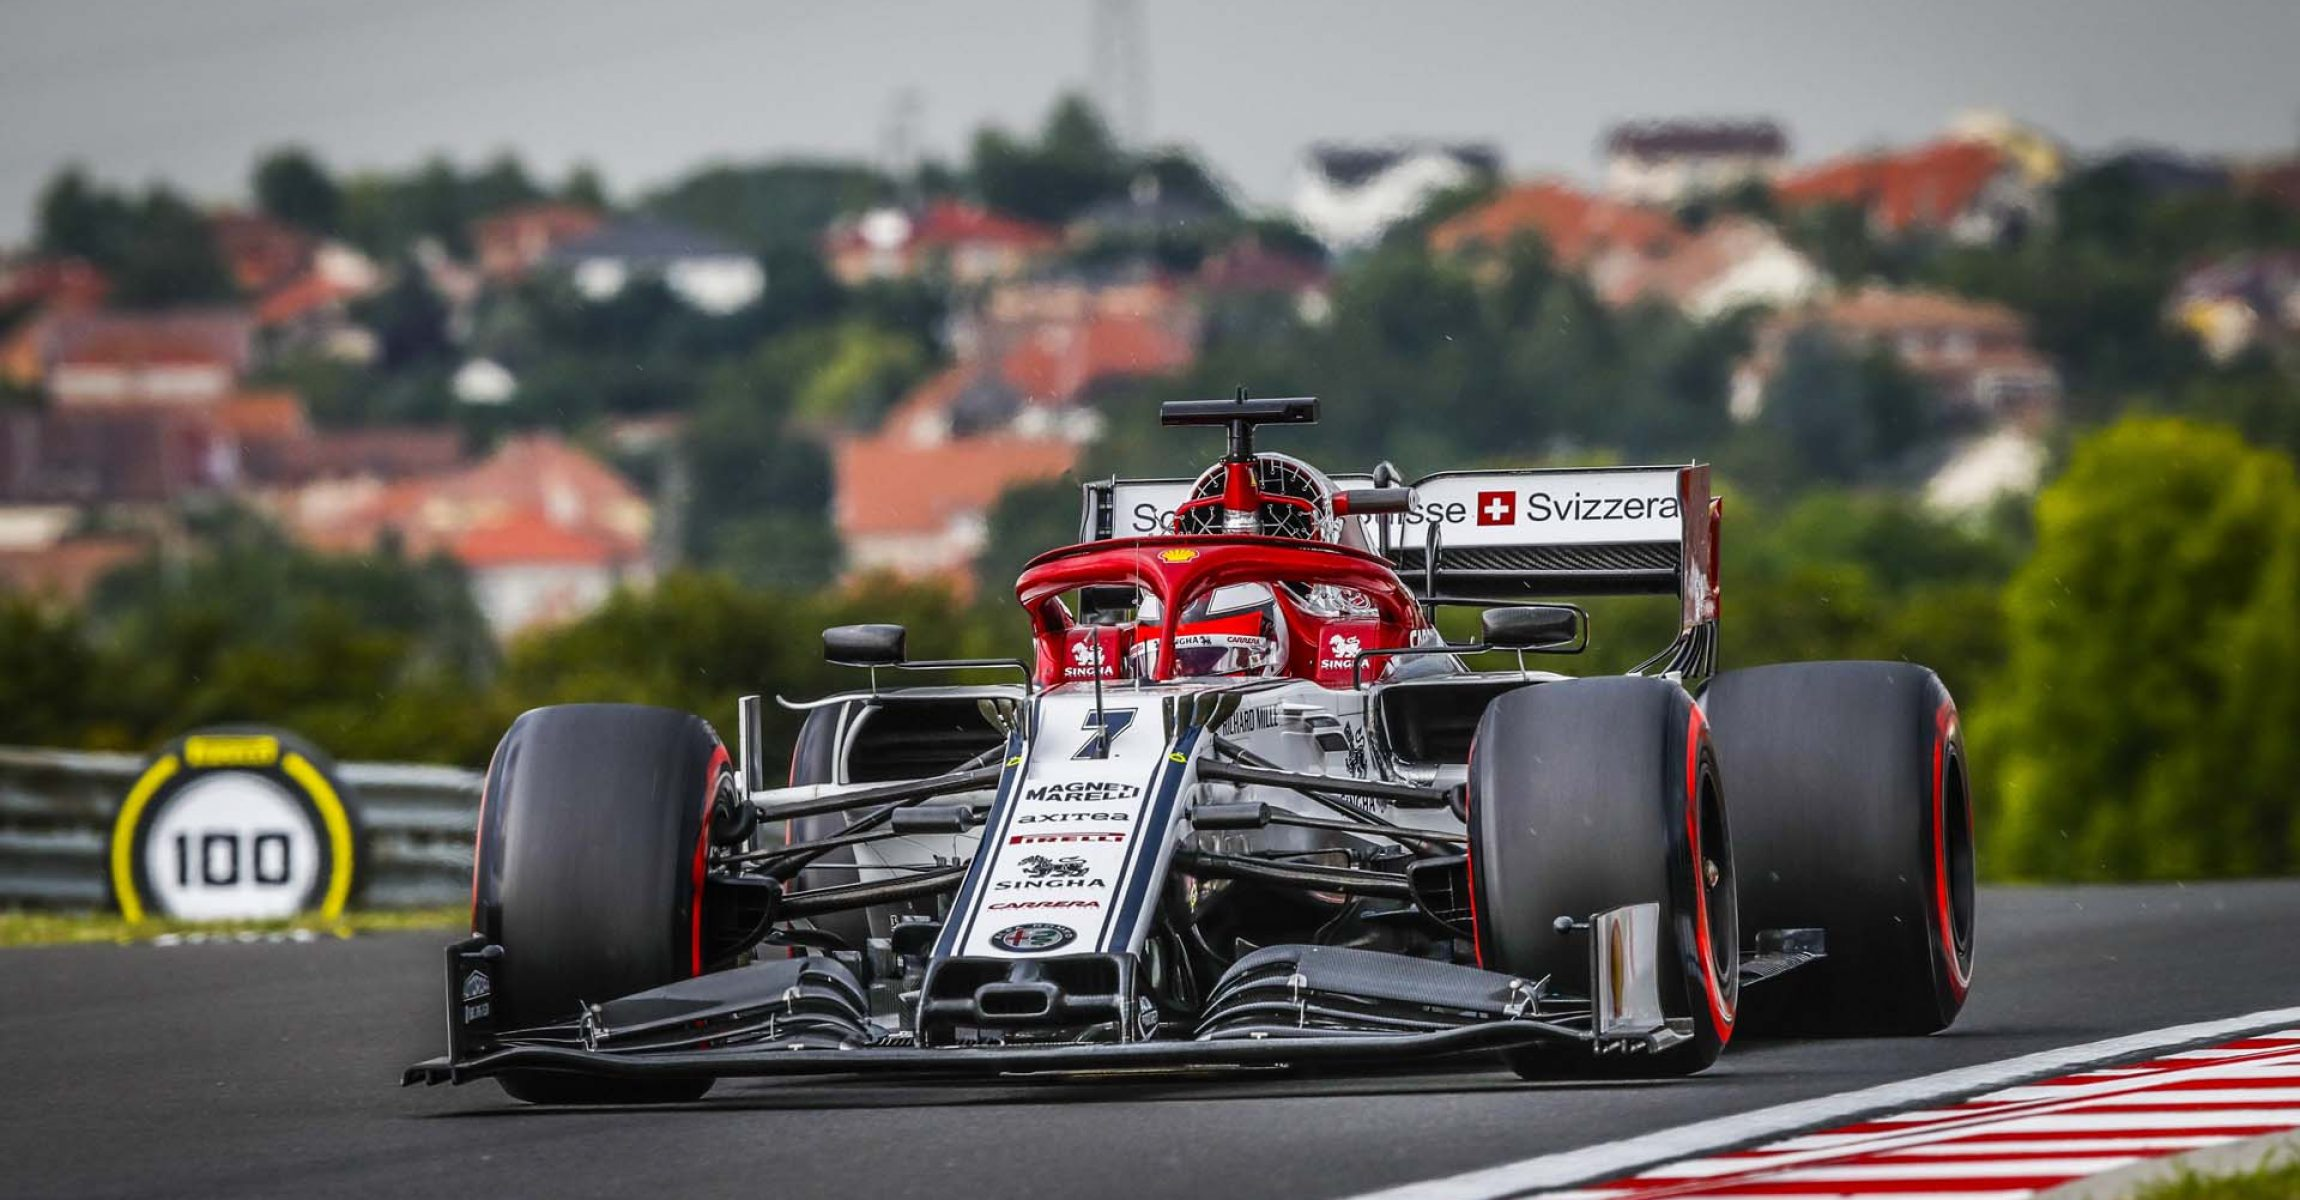 07 RAIKKONEN Kimi Räikkönen (fin), Alfa Romeo Racing C38, action during the 2019 Formula One World Championship, Grand Prix of Hungary from august 1 to 4, Hungaroring, Budapest - Photo Florent Gooden / DPPI